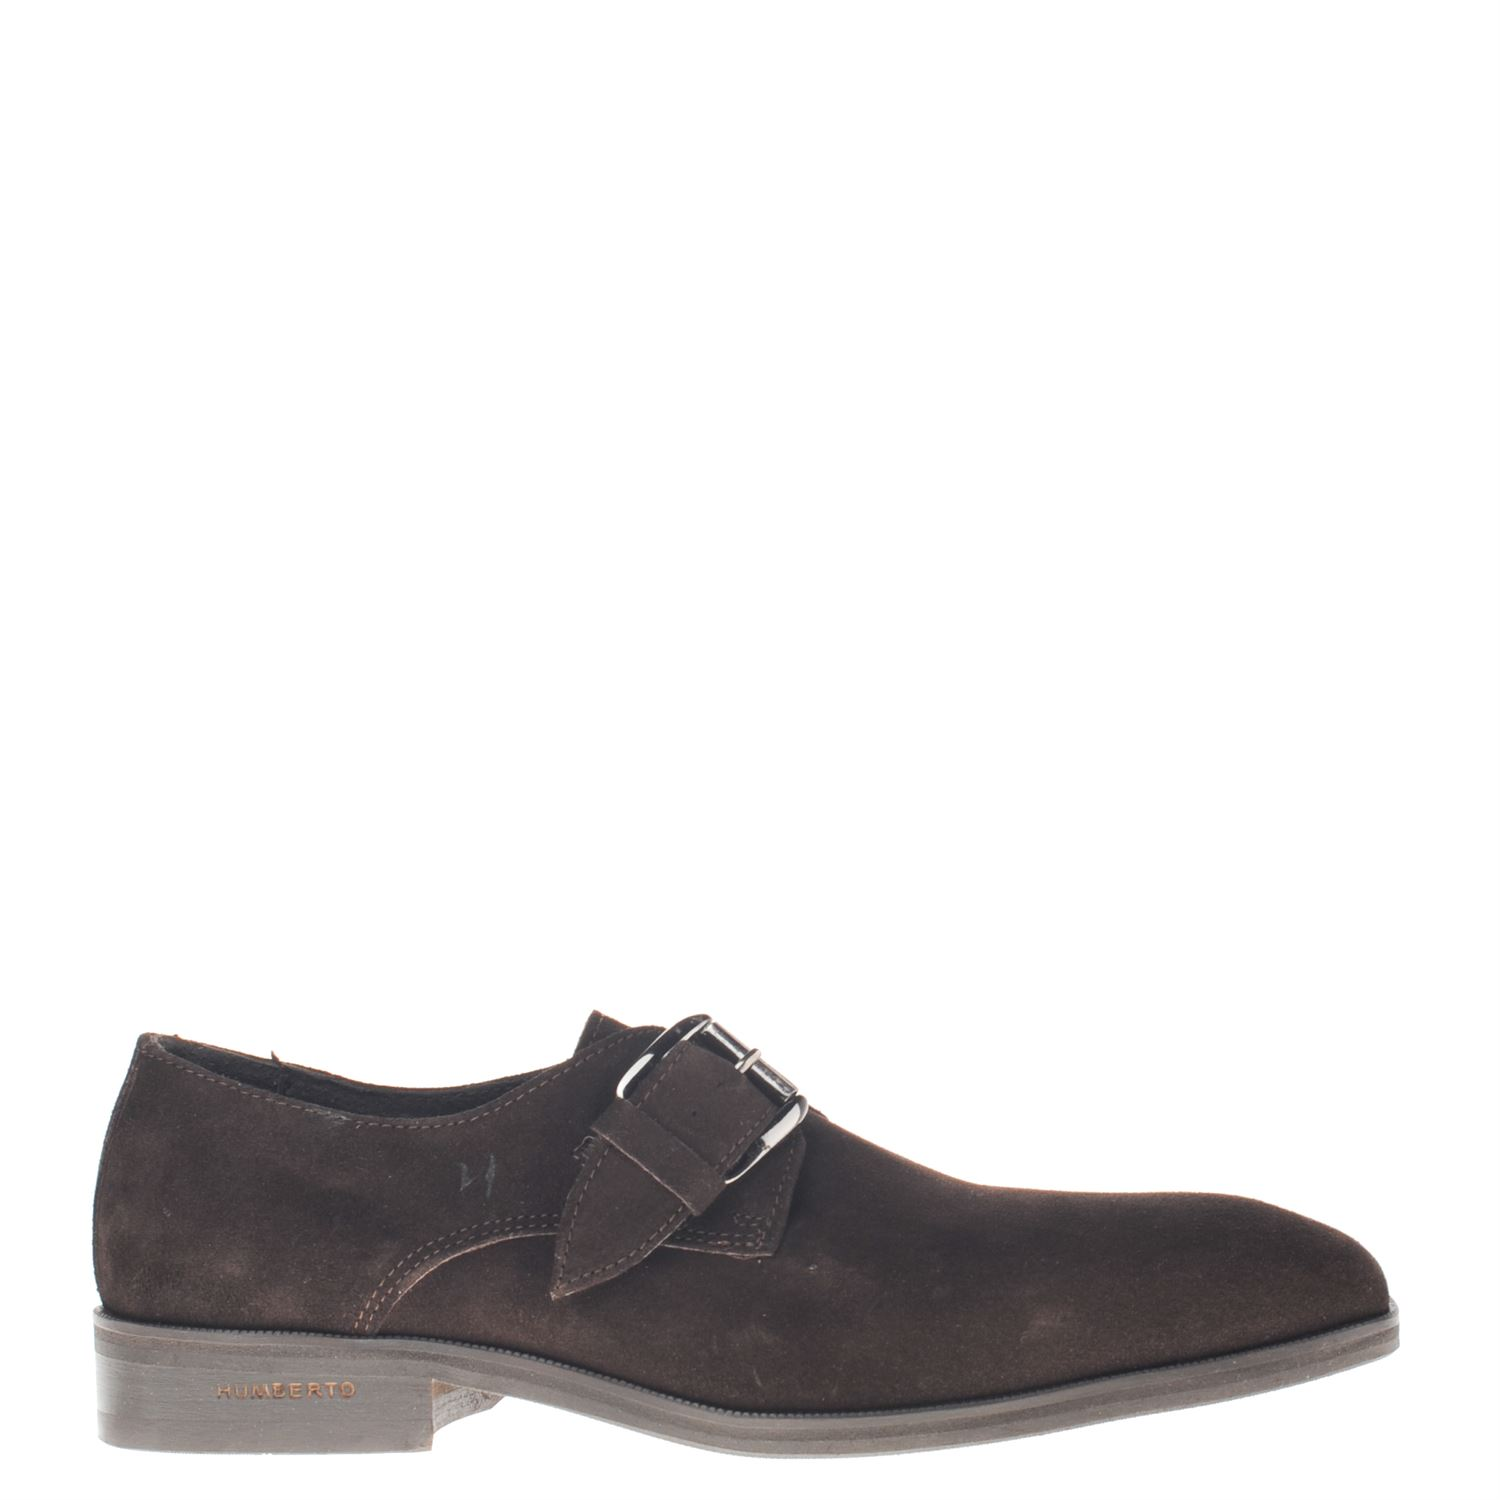 Humberto Chaussures Beige Pour Les Hommes mSLS5GI